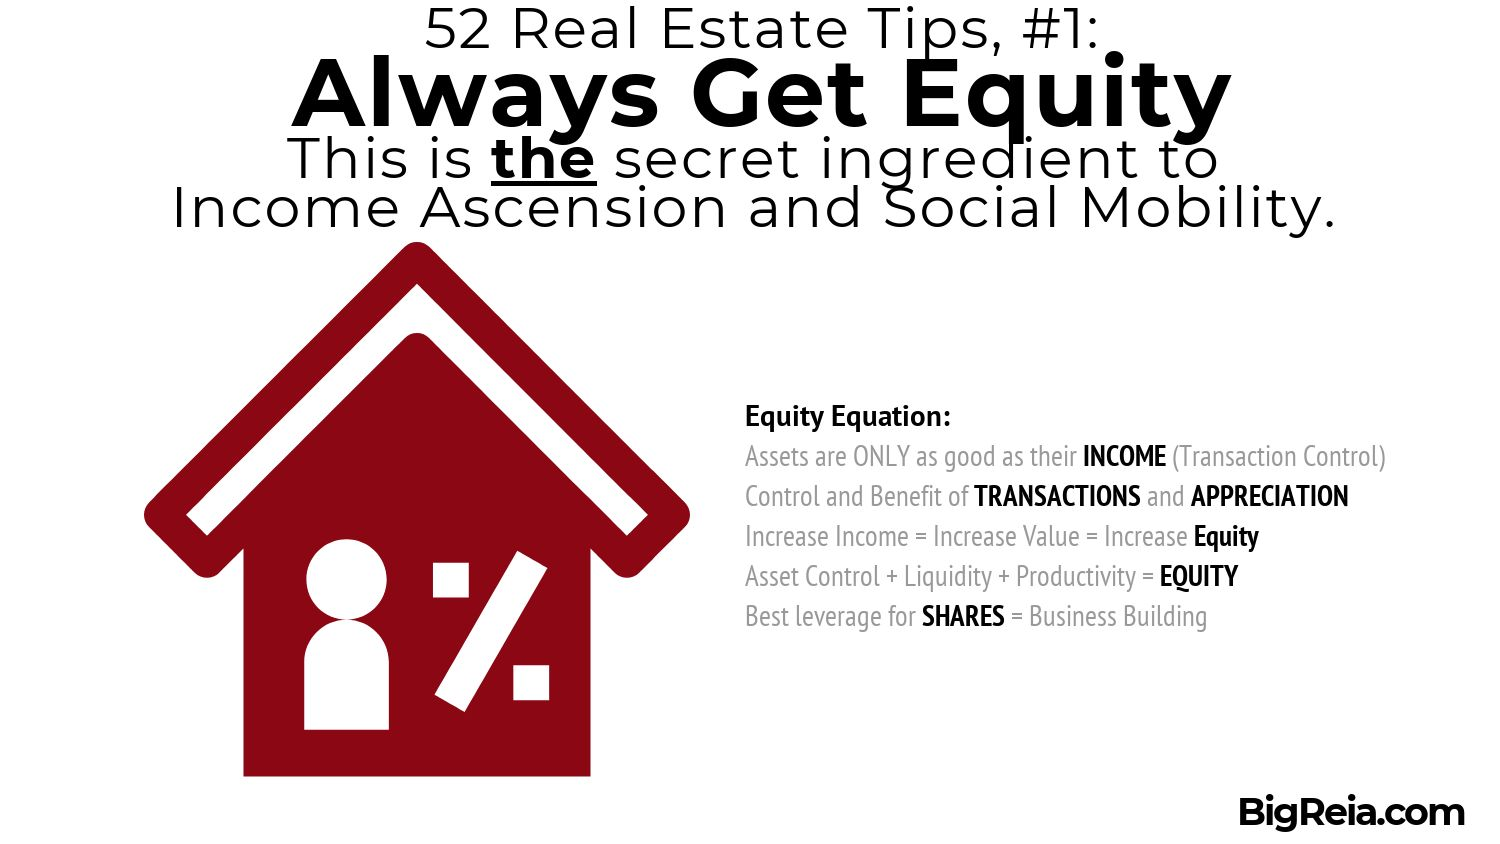 Always get equity using The Equity Equation